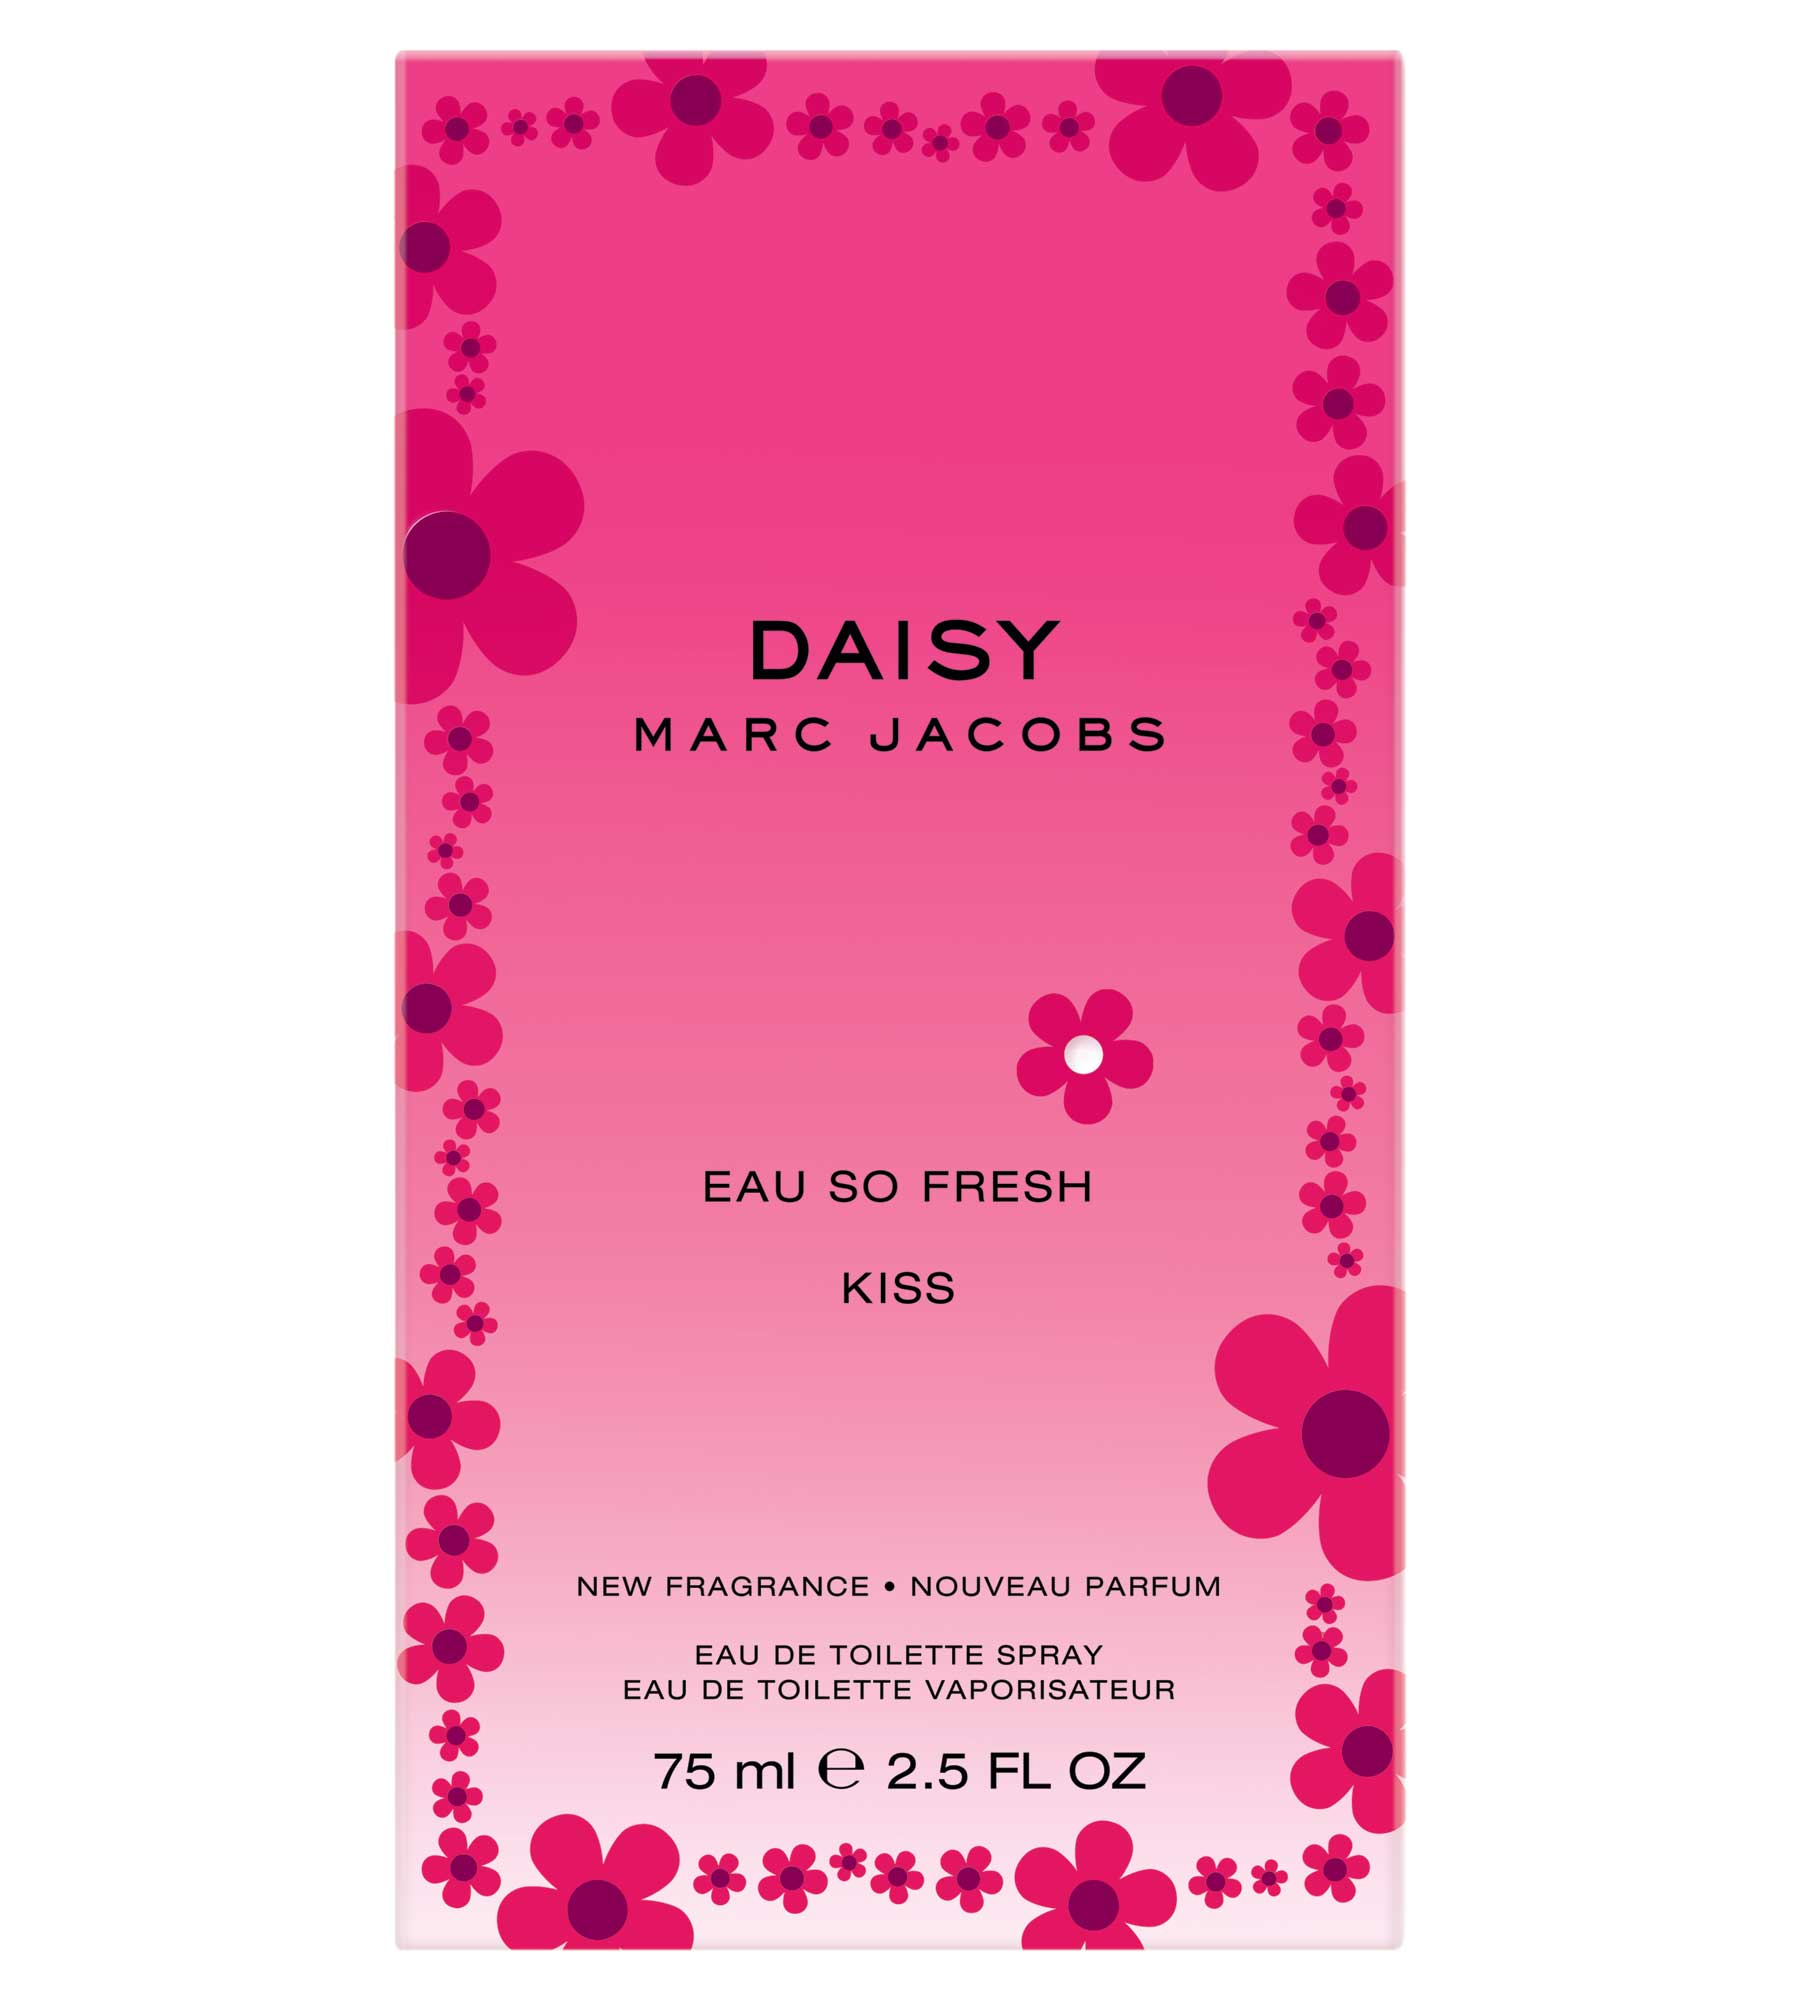 Daisy eau so fresh kiss marc jacobs perfume a new fragrance for daisy eau so fresh kiss marc jacobs for women pictures izmirmasajfo Image collections